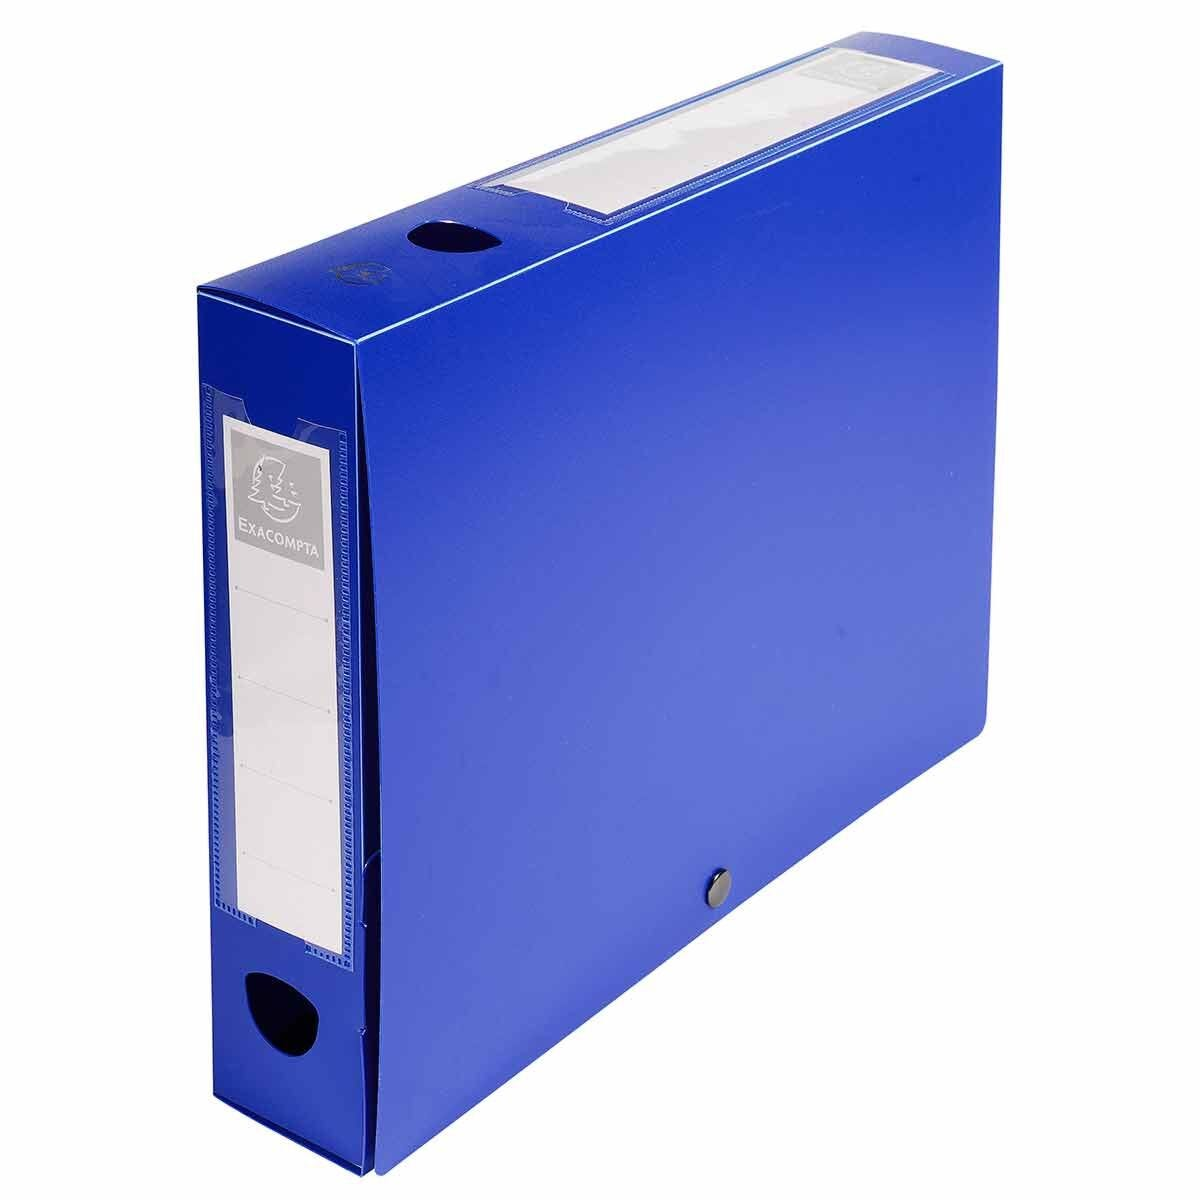 Exacompta Press Stud Opaque Filing Box 60mm Spine A4 Pack of 10 Blue